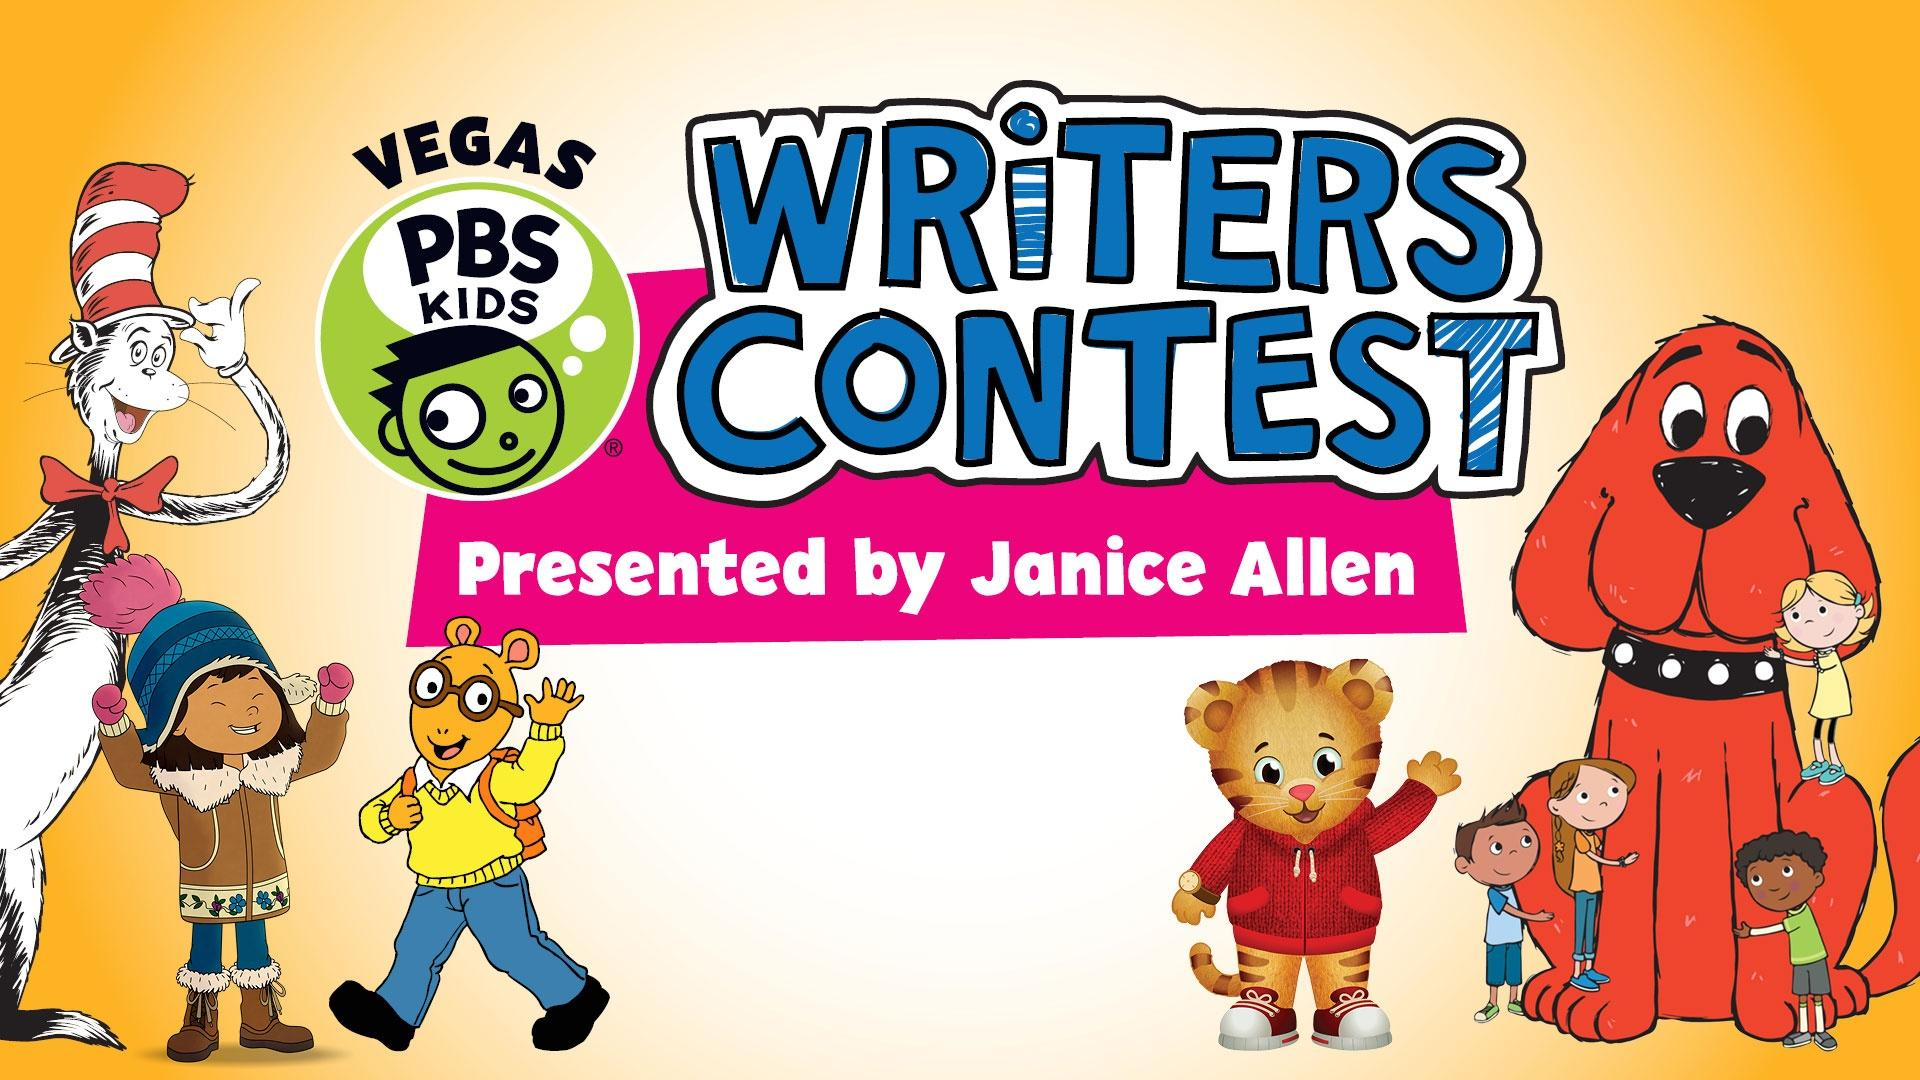 VEGAS PBS KIDS Writers Contest Presented by Janice Allen